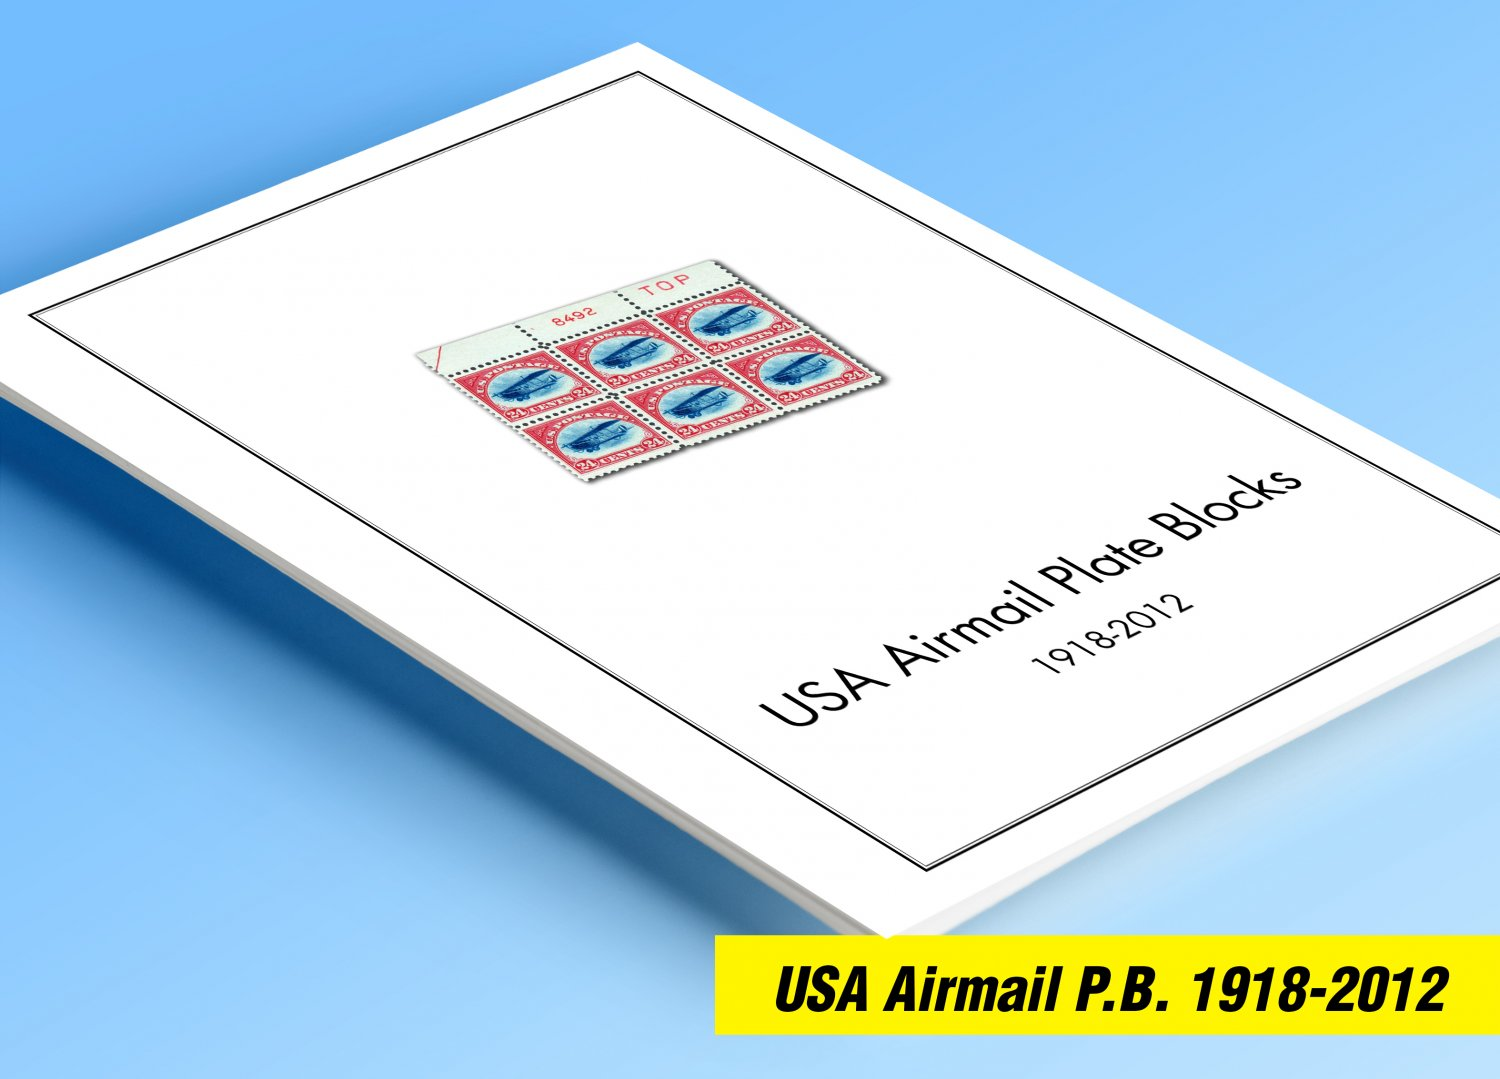 COLOR PRINTED U.S.A. AIRMAIL PLATE BLOCKS 1918-2012 STAMP ALBUM PAGES (50 illustrated pages)